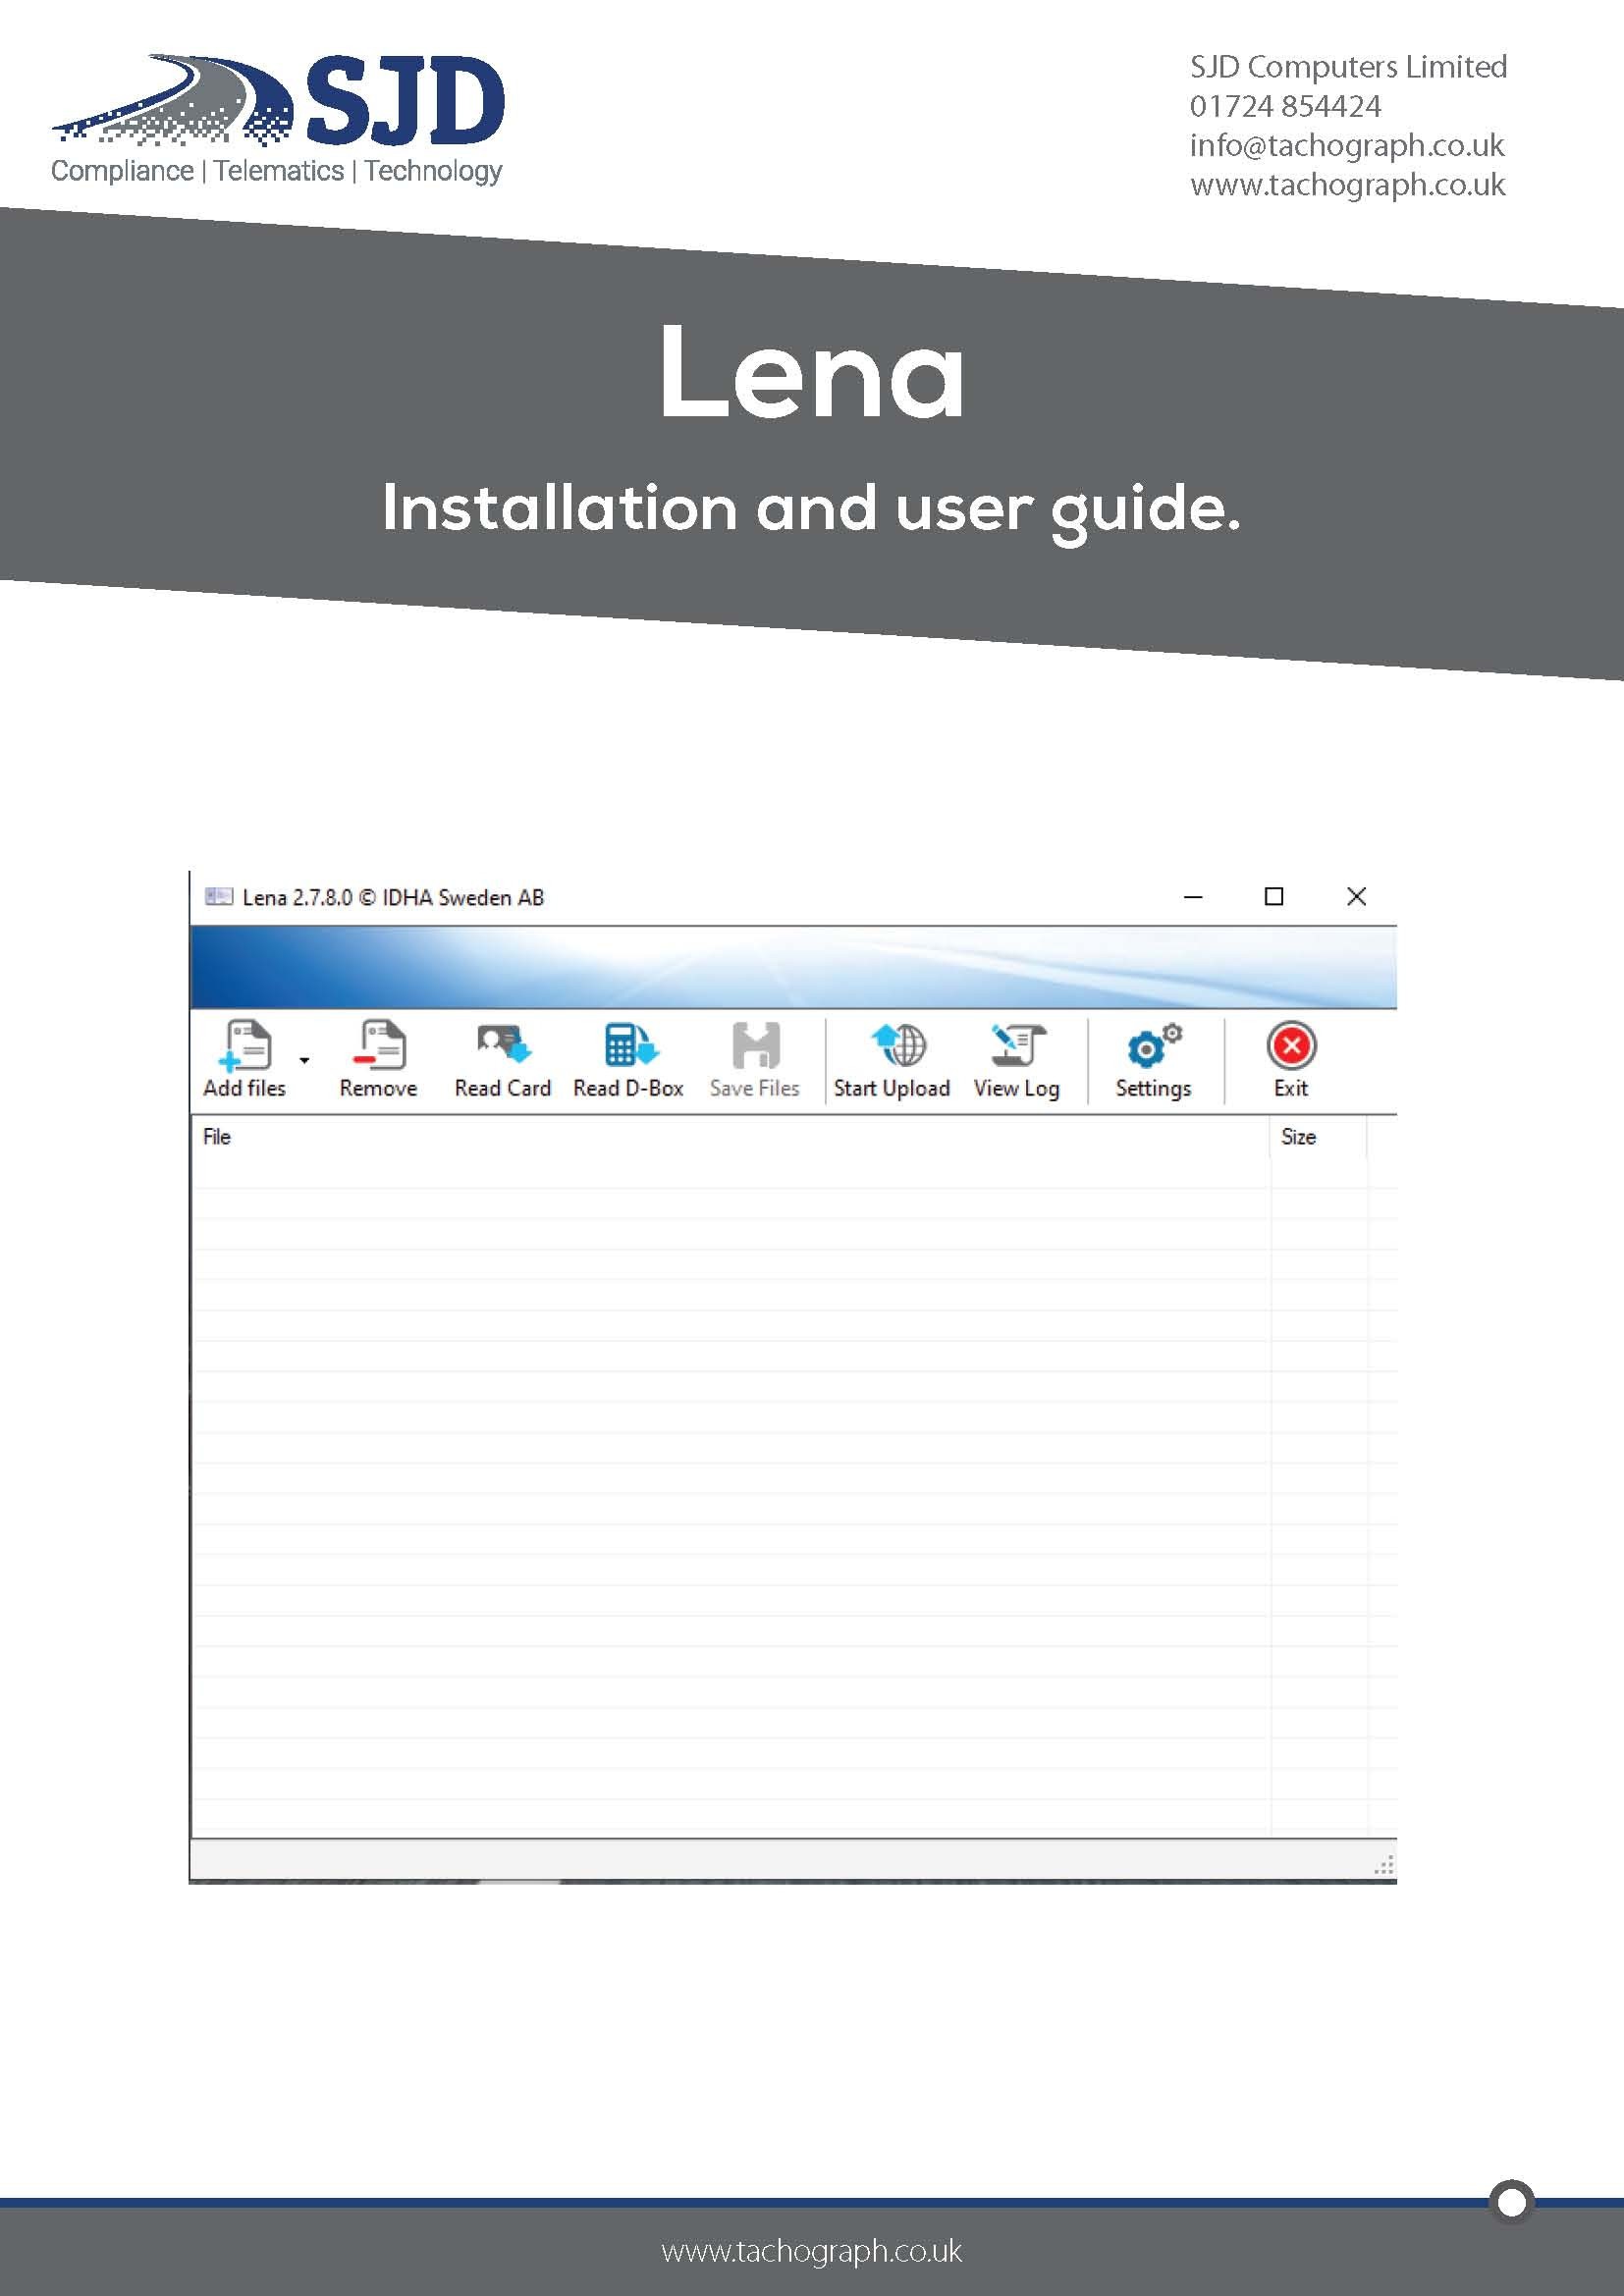 Lena setup and user guide cover